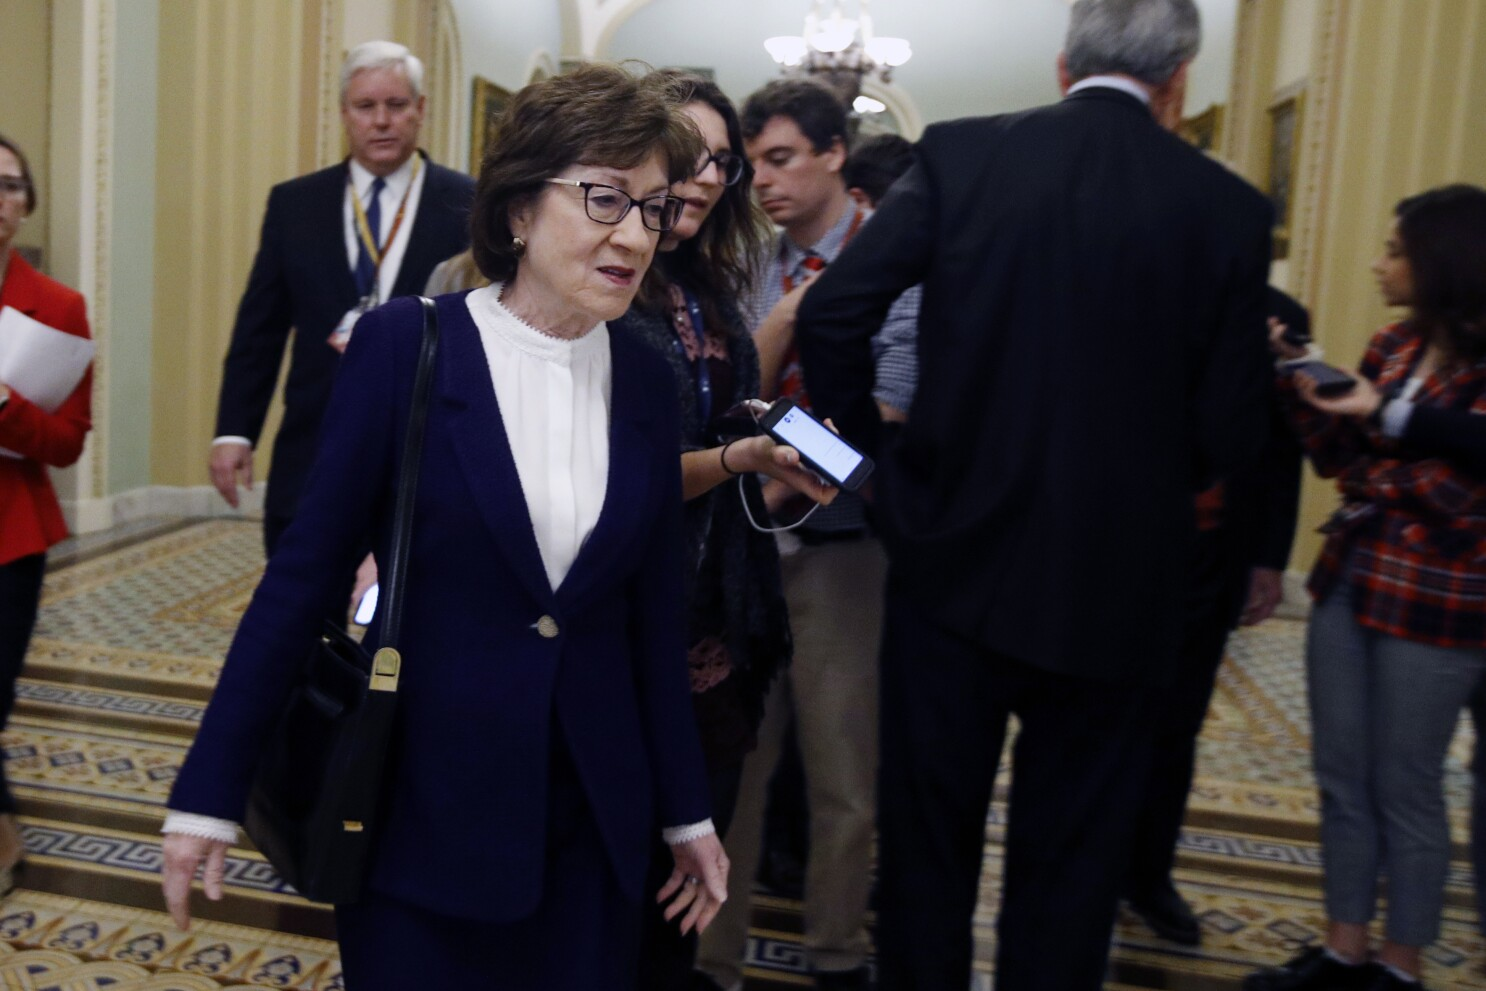 sen susan collins says she will vote to acquit trump los angeles times sen susan collins says she will vote